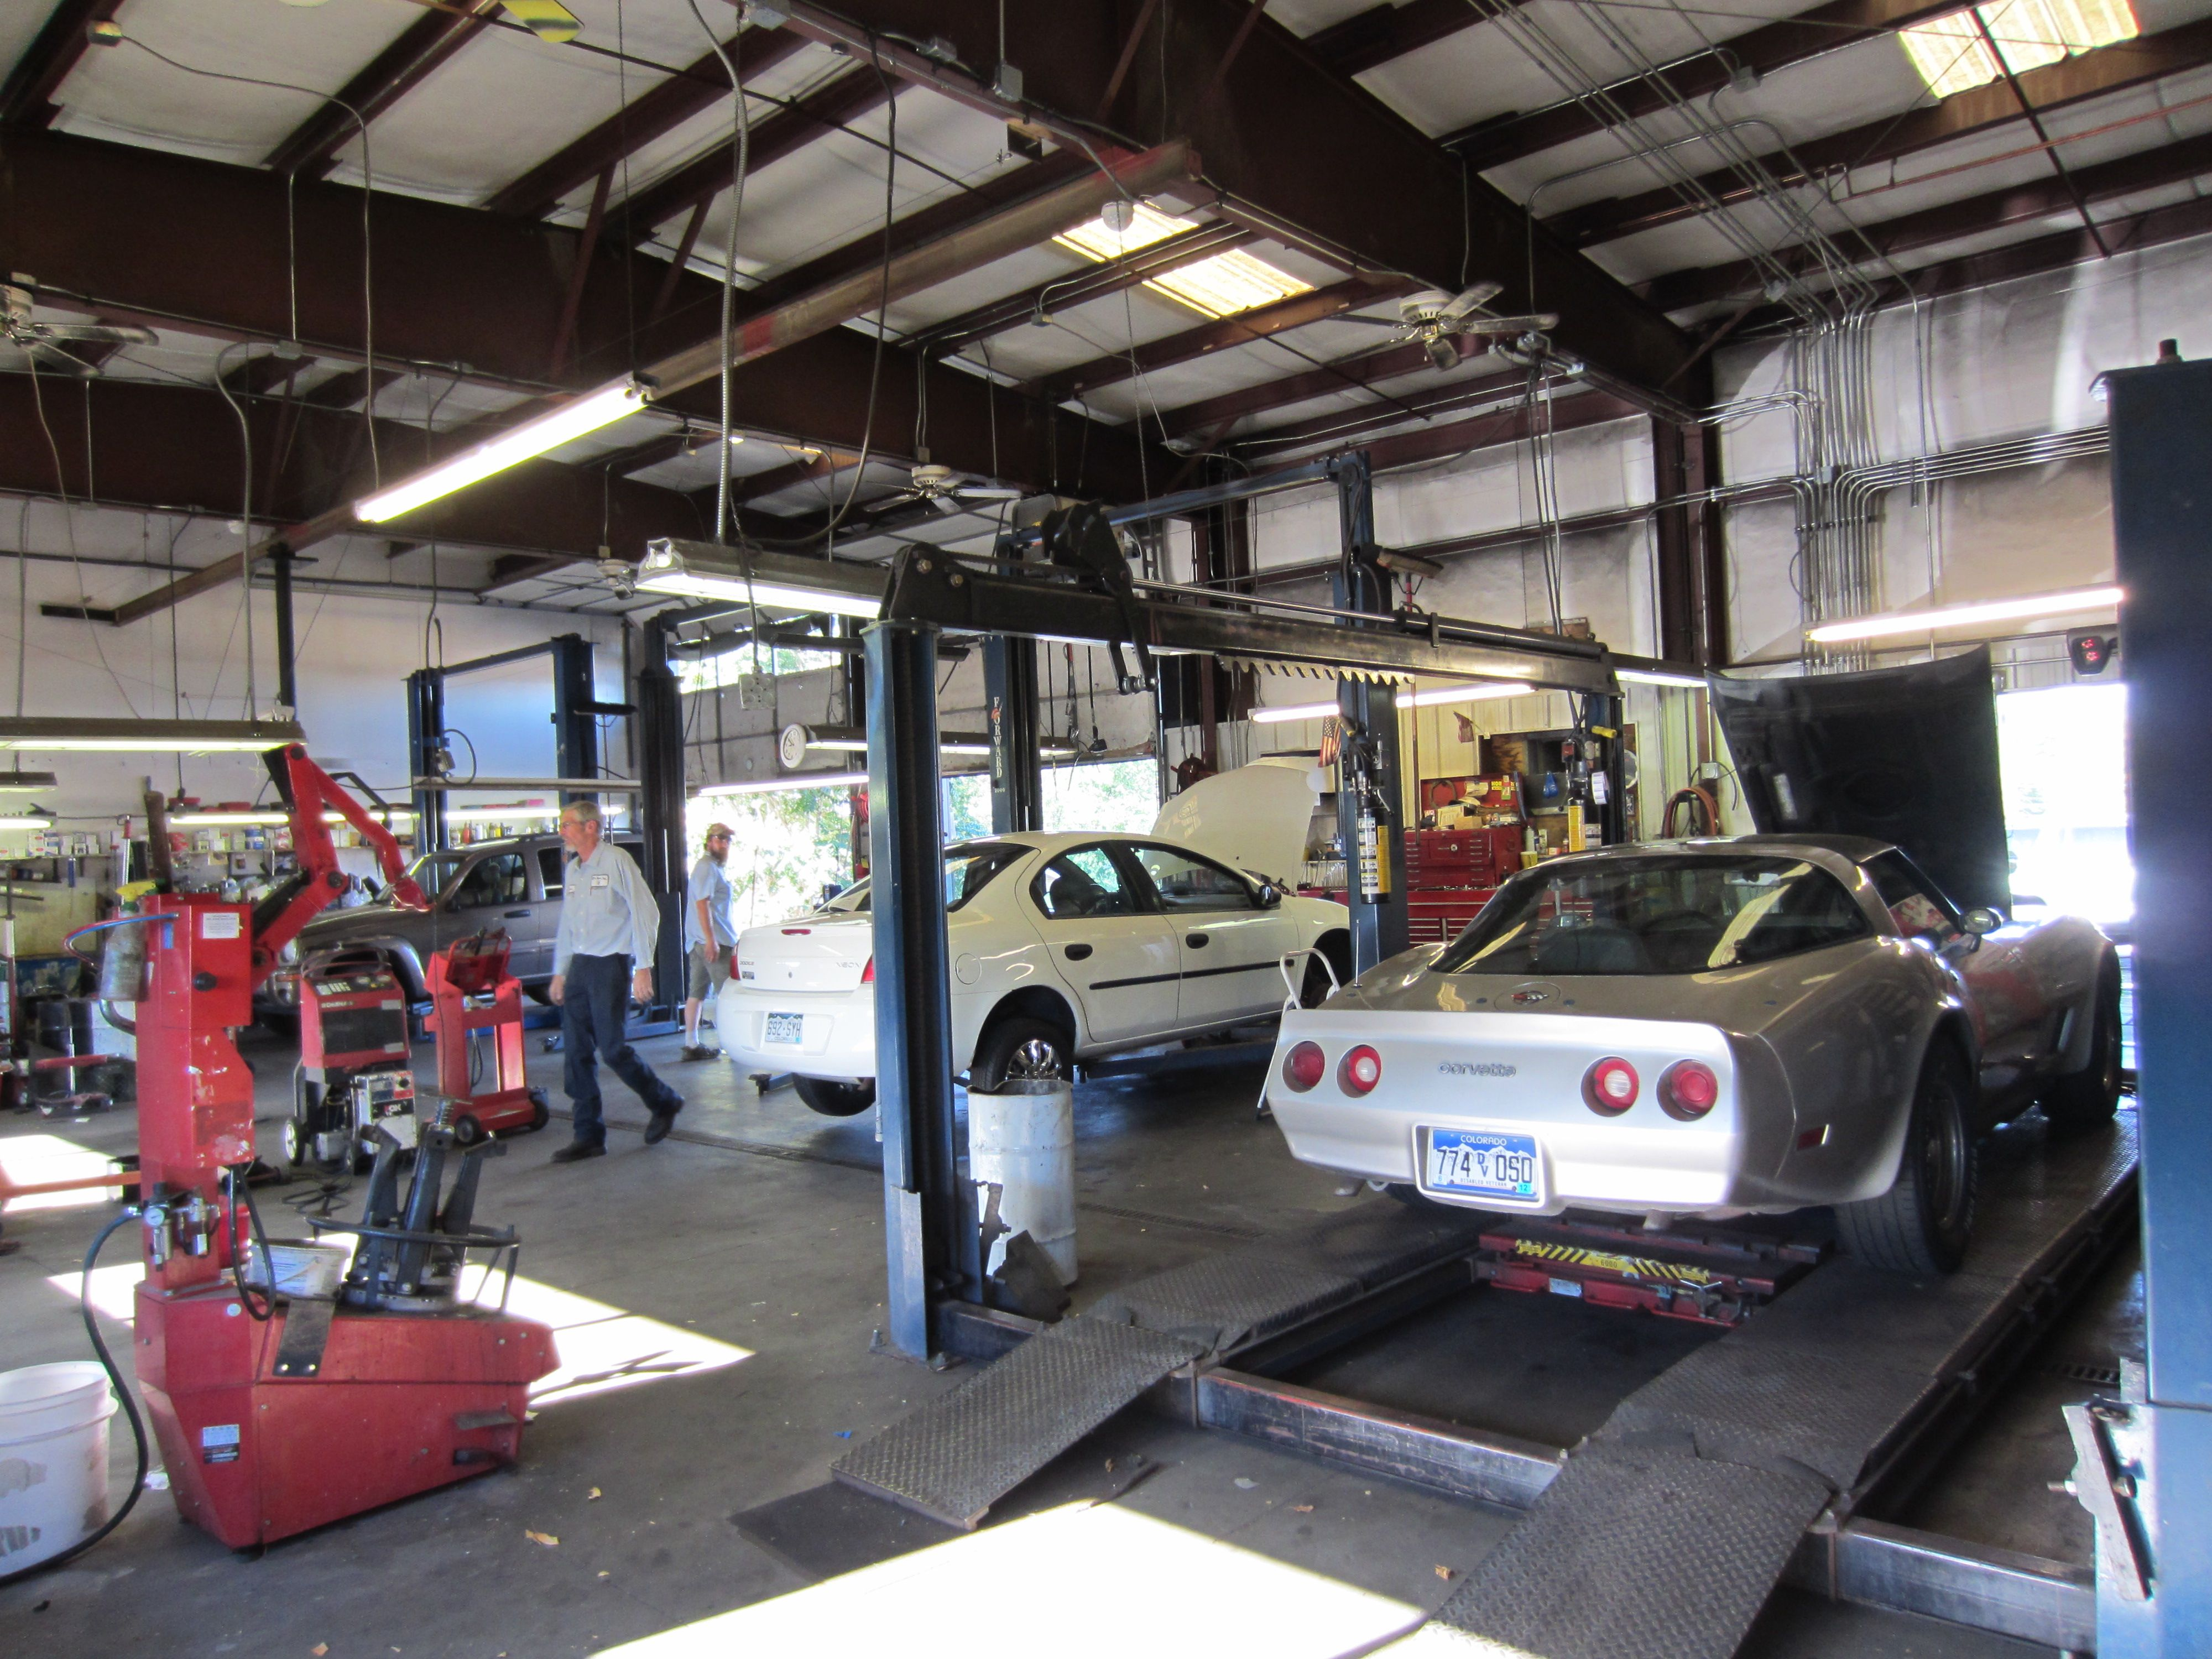 Looking for a repair shop in your area? Check our listings